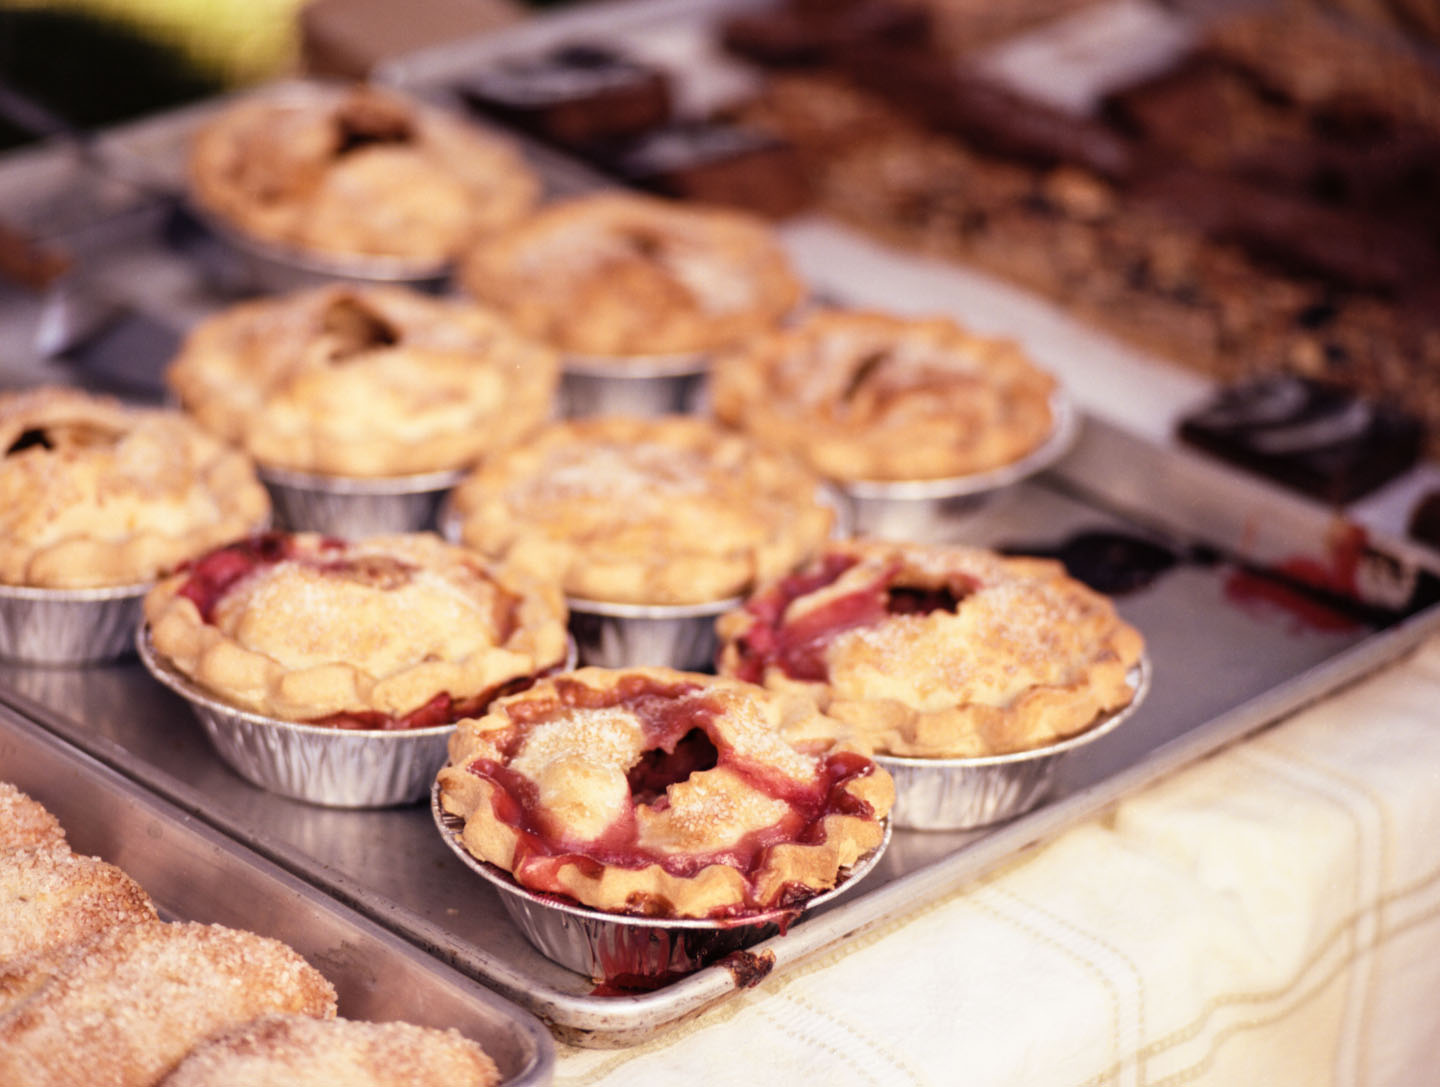 Cherry pies at Salt Lake Farmers Market